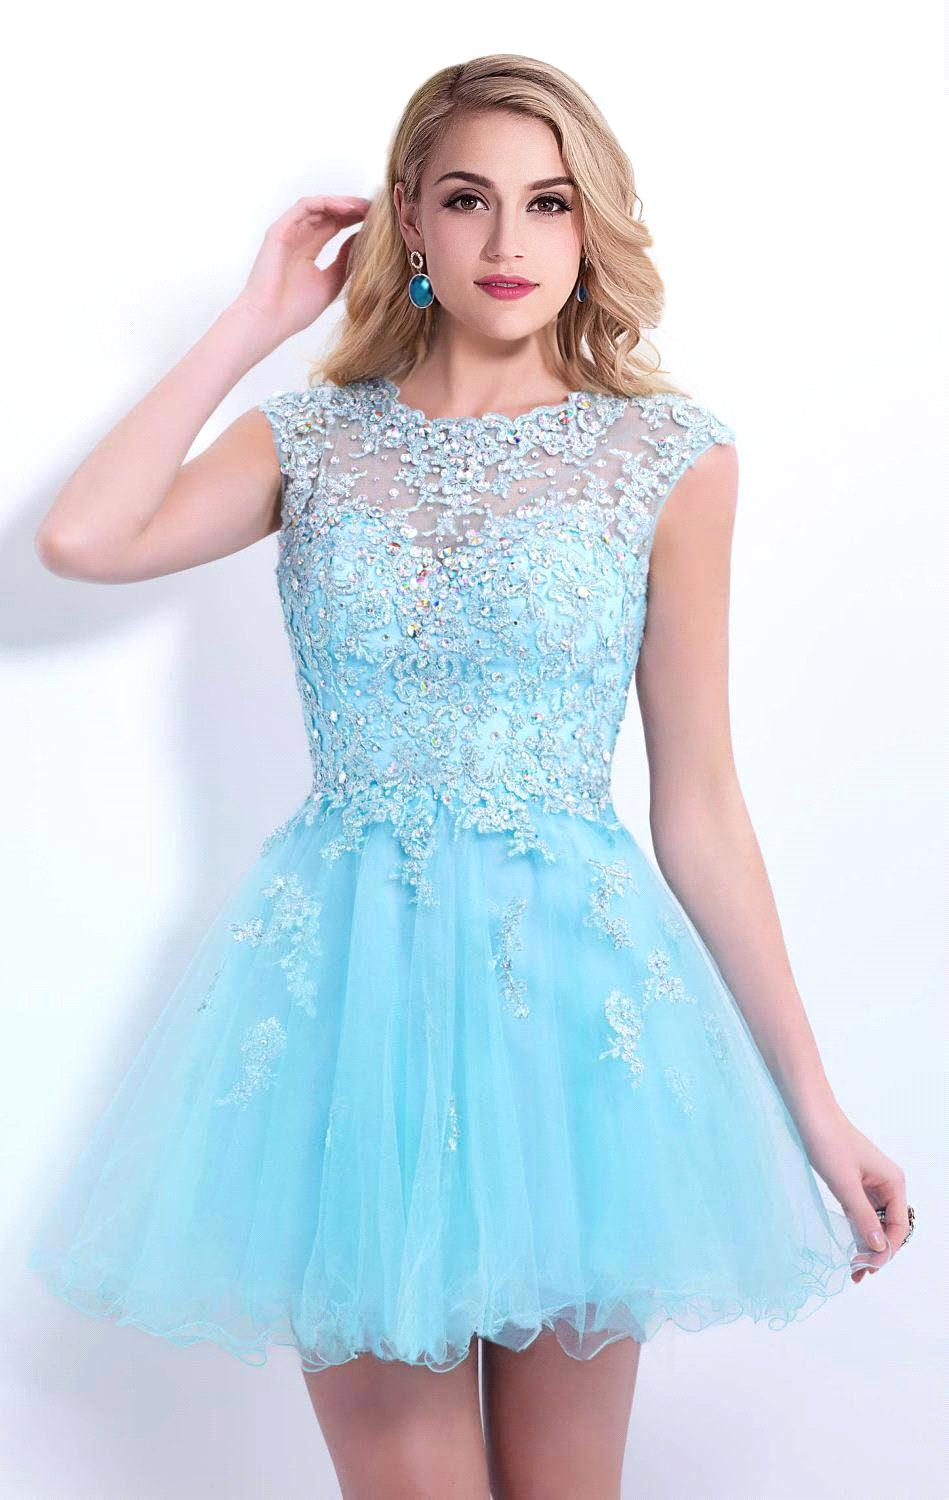 Unique Cheap Prom Dresses 2012 Under 100 Mold - Wedding Plan Ideas ...